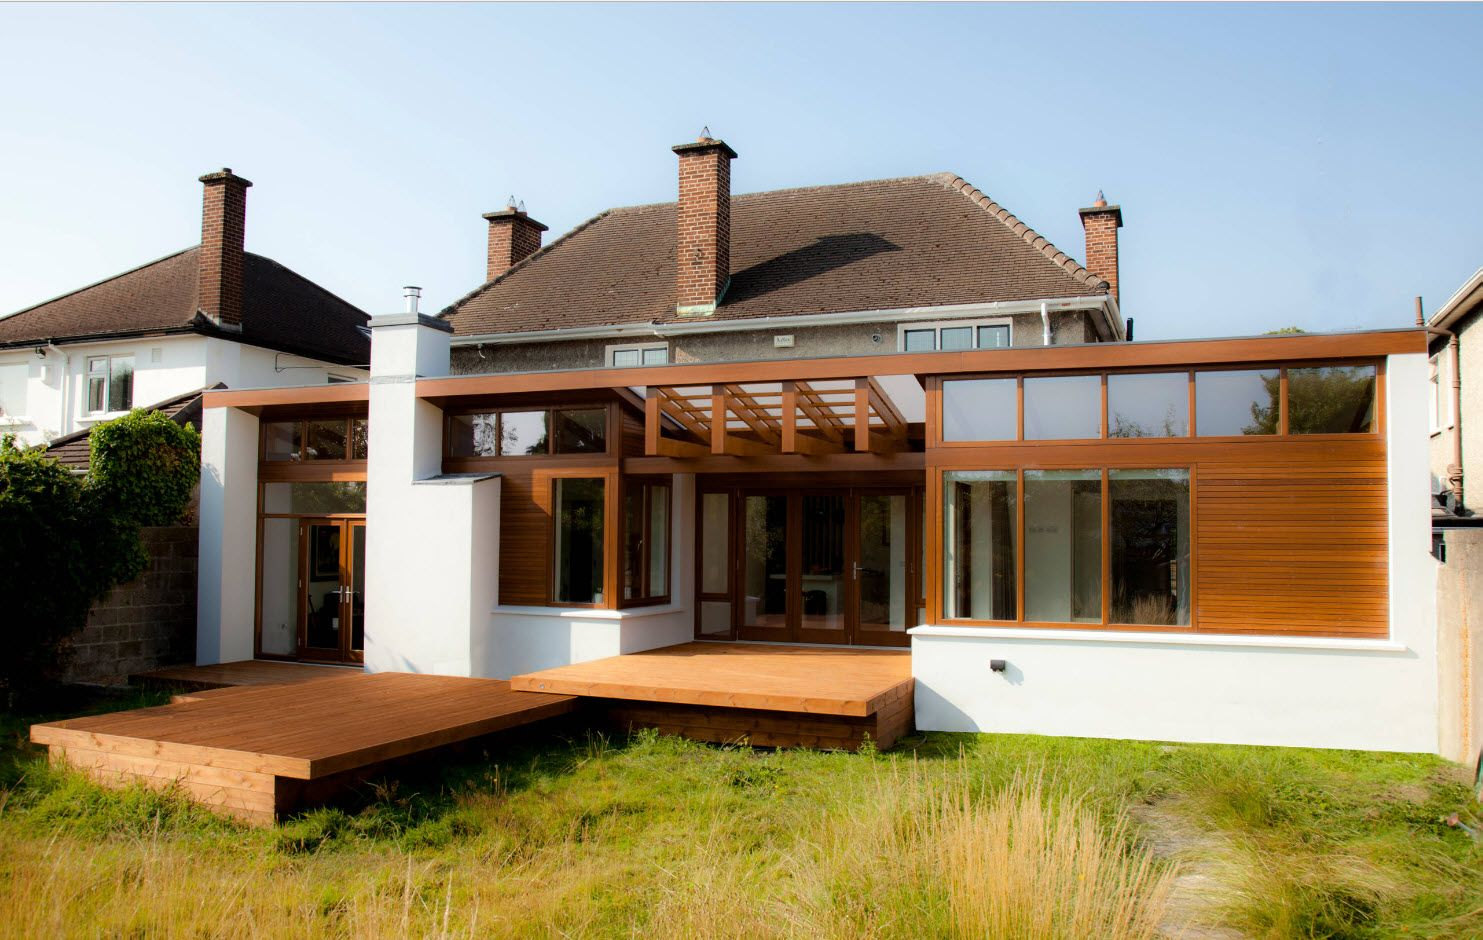 Country House Porch Decoration & Design Ideas. Wooden latticed canopy in front of the building